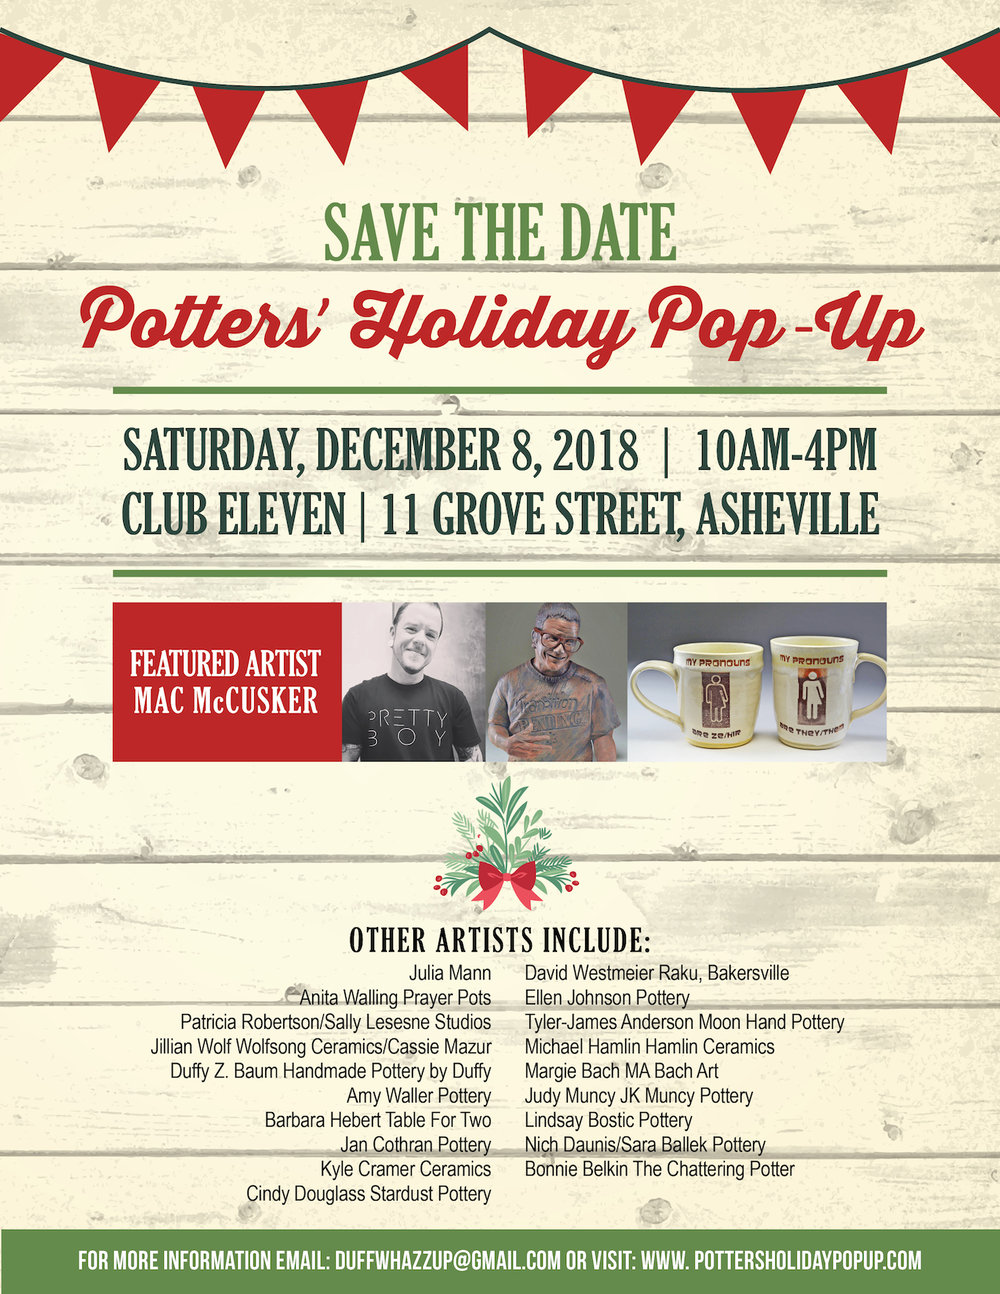 Potters' Holiday Pop-Up - Potters' Holiday Pop-UpSaturday, December 8th10am - 4pmClub Eleven11 Grove StreetAsheville, NC 2880120+ potters working in the Asheville area are hosting a cooperative pop-up market showcasing the sculptural work of featured artist, Mac McCusker, as well as functional pottery perfect for holiday gift buying.More info: http://pottersholidaypopup.com/and https://www.exploreasheville.com/event-calendar/detail/potters-holiday-pop-up/23397/